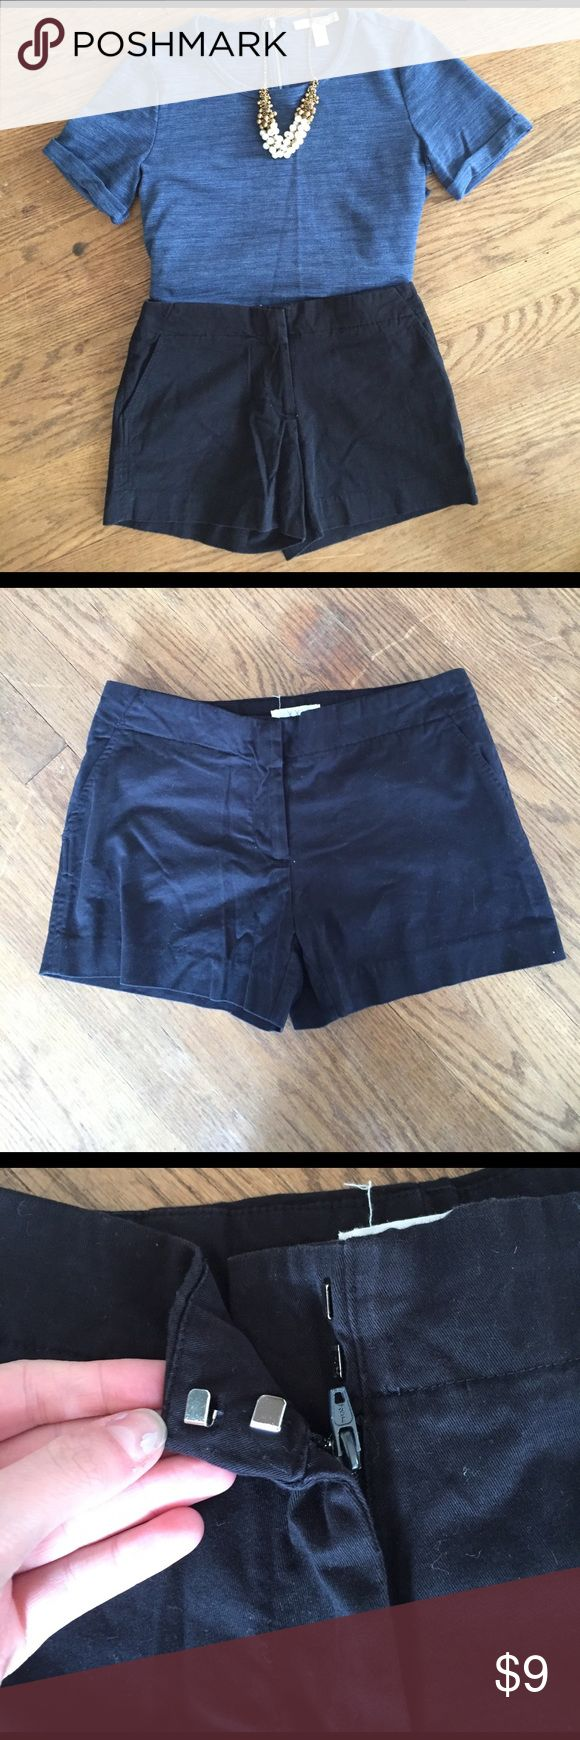 Black Khaki Shorts. Super cute black shorts that can be dressed up or down during the summer time. Only worn for one season. Forever 21 Shorts